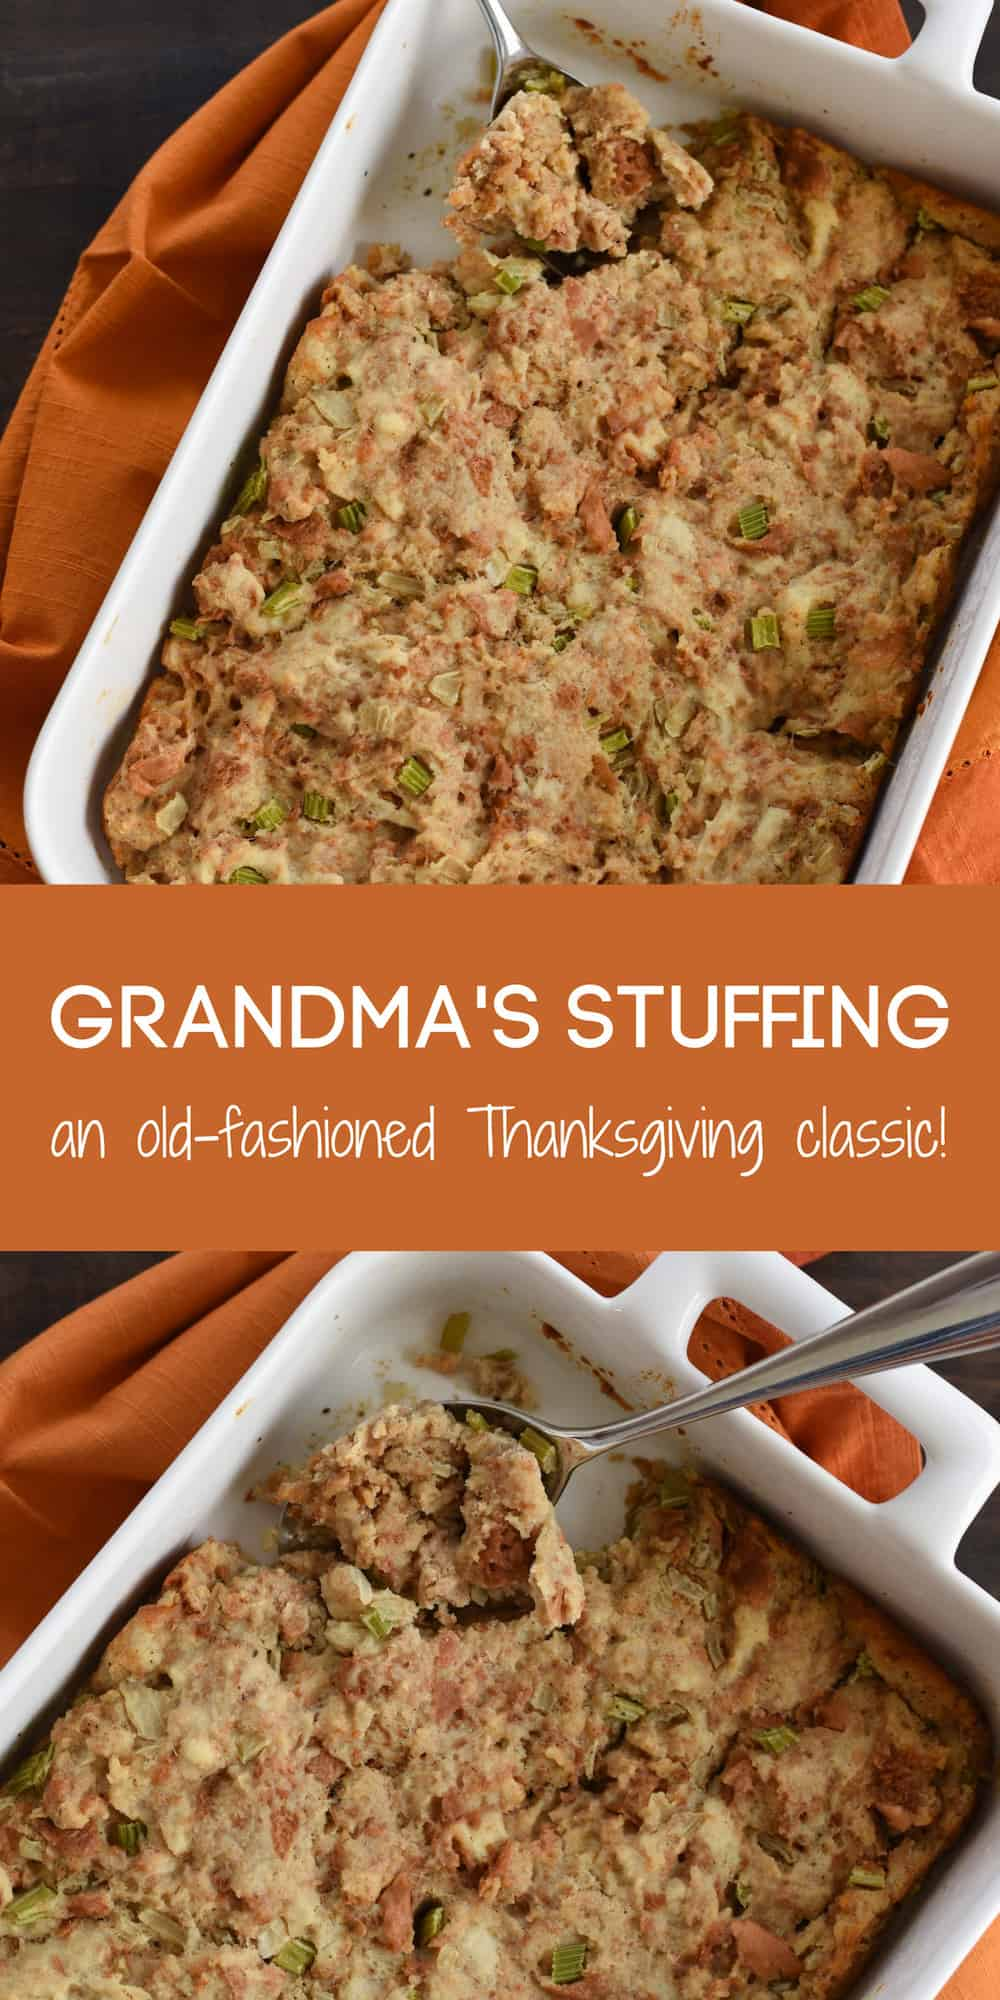 Collage of images of old fashioned bread stuffing for Thanksgiving with overlay GRANDMA'S STUFFING an old-fashioned Thanksgiving classic!